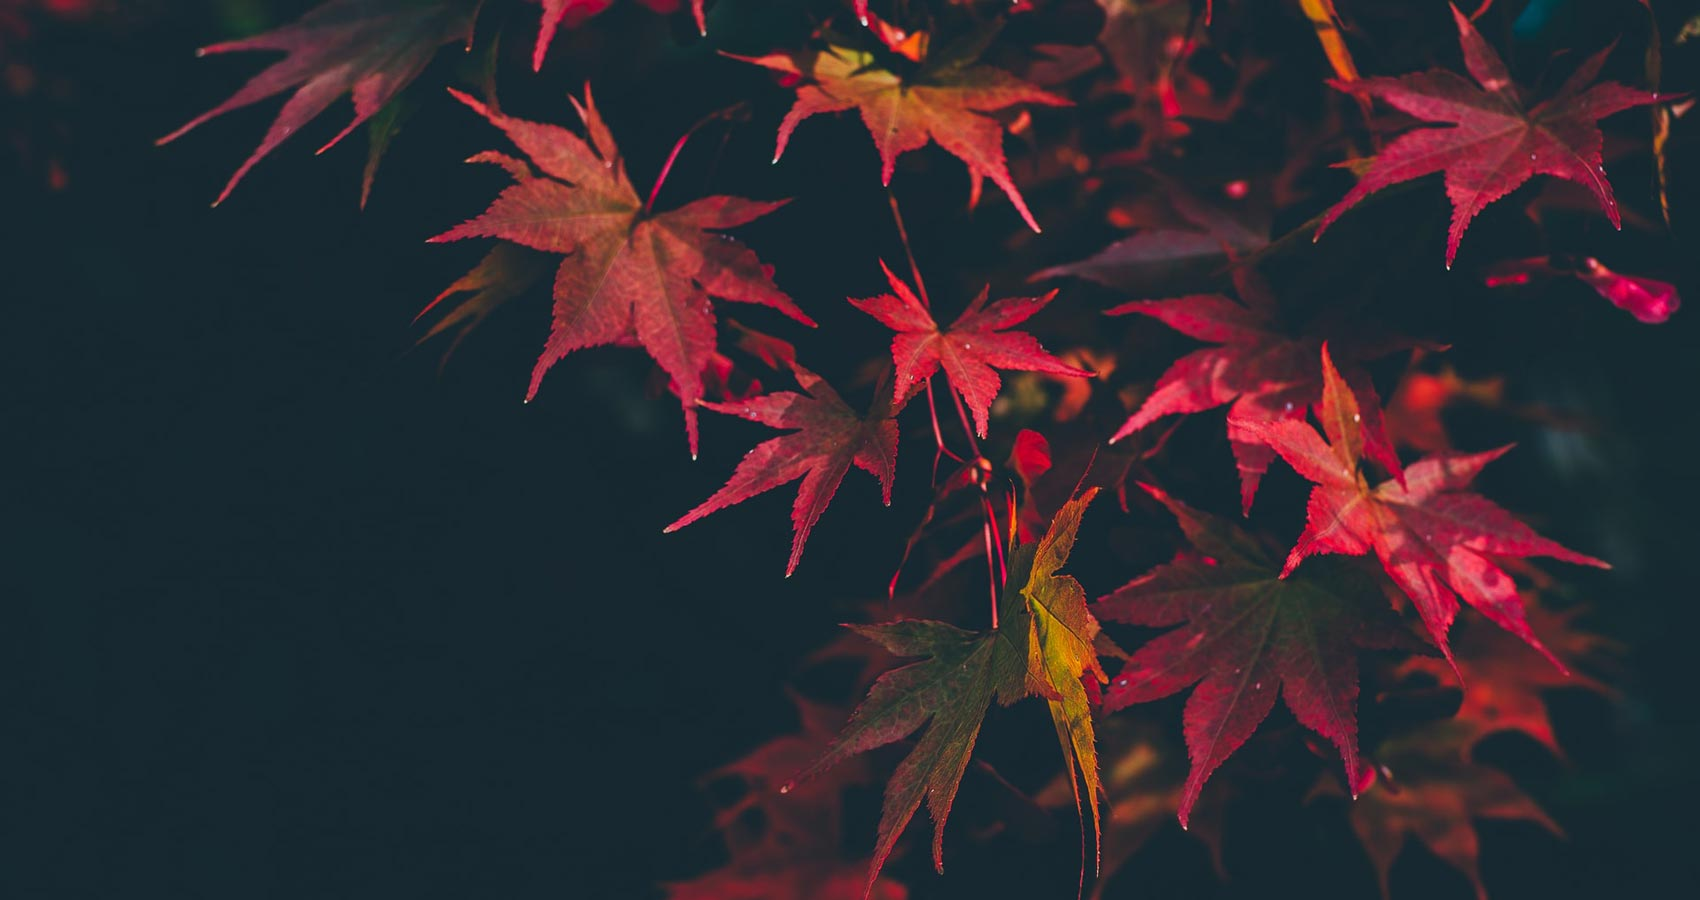 Maple, a poem written by Robert Frost at Spillwords.com